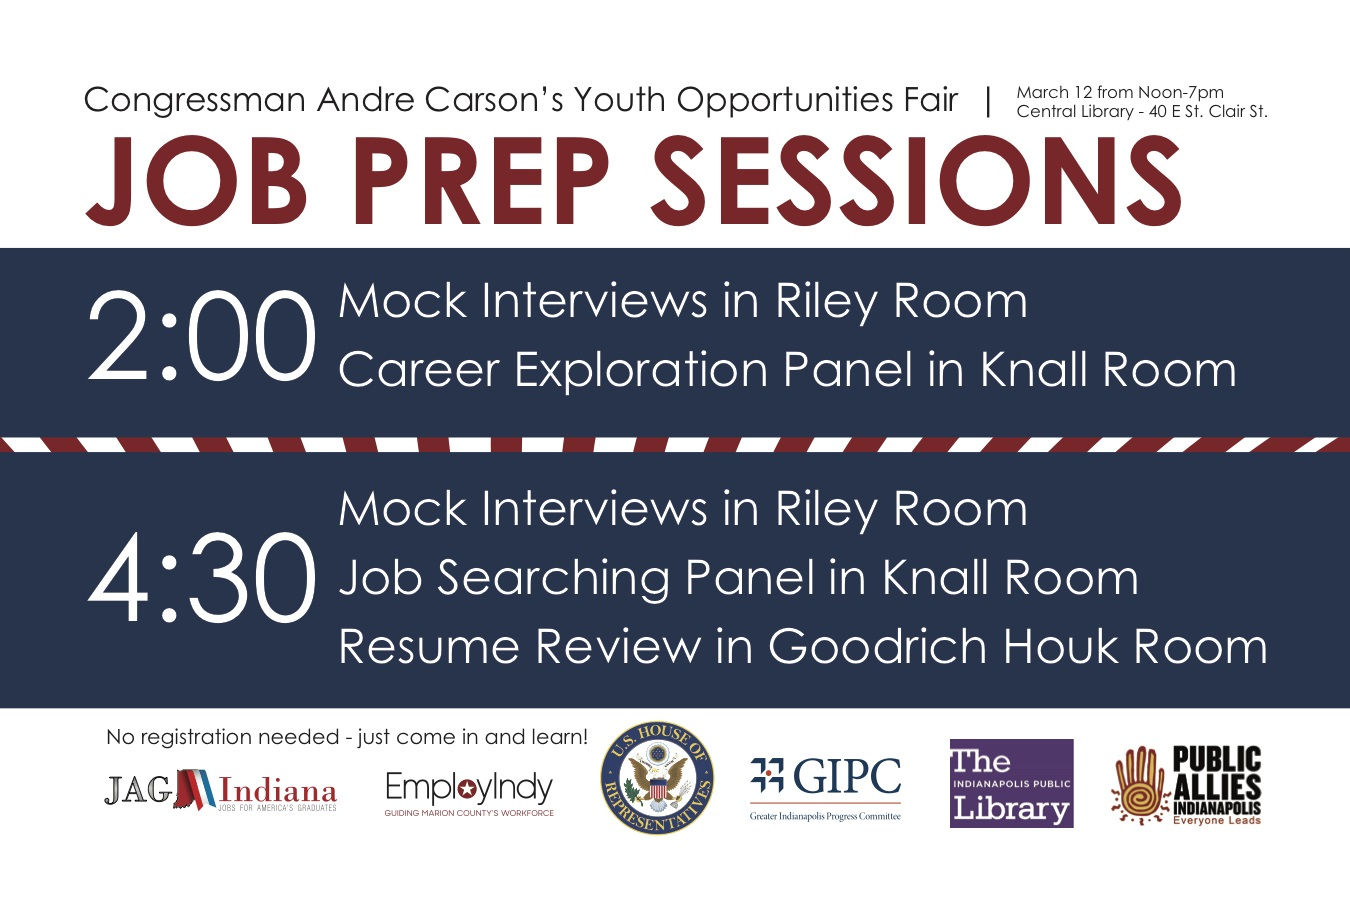 Youth Opportunities Fair | Congressman Andre Carson